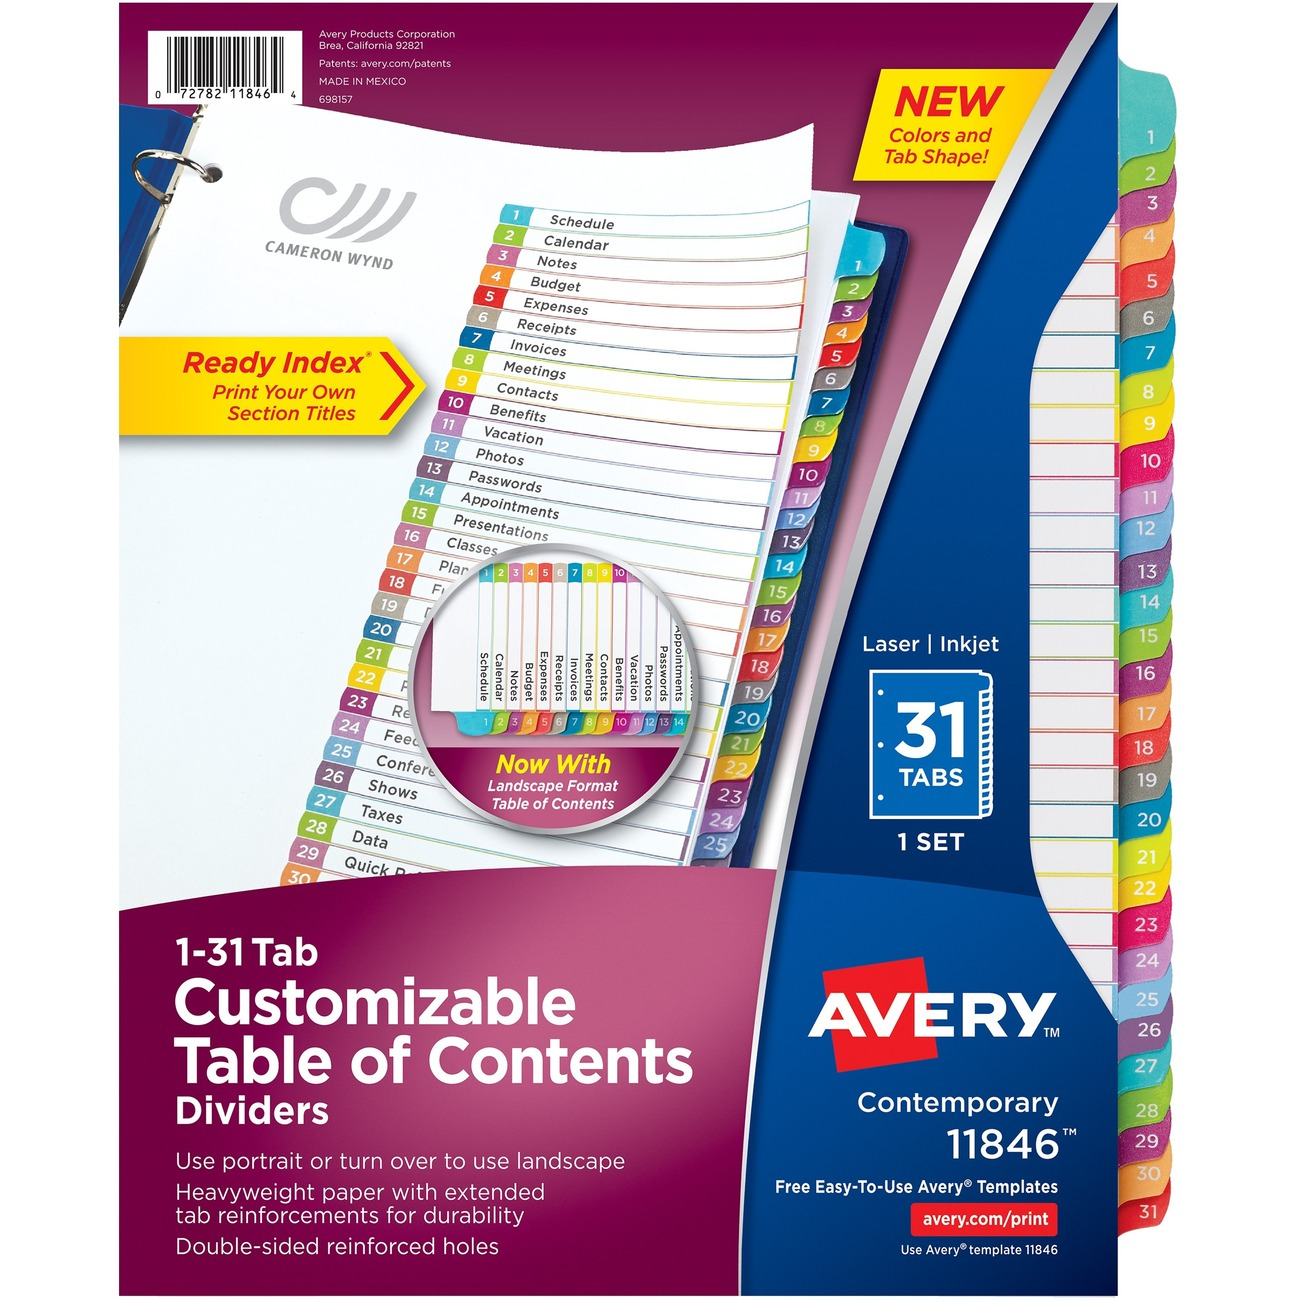 Avery 10 Tab Color Template Kordurorddiner